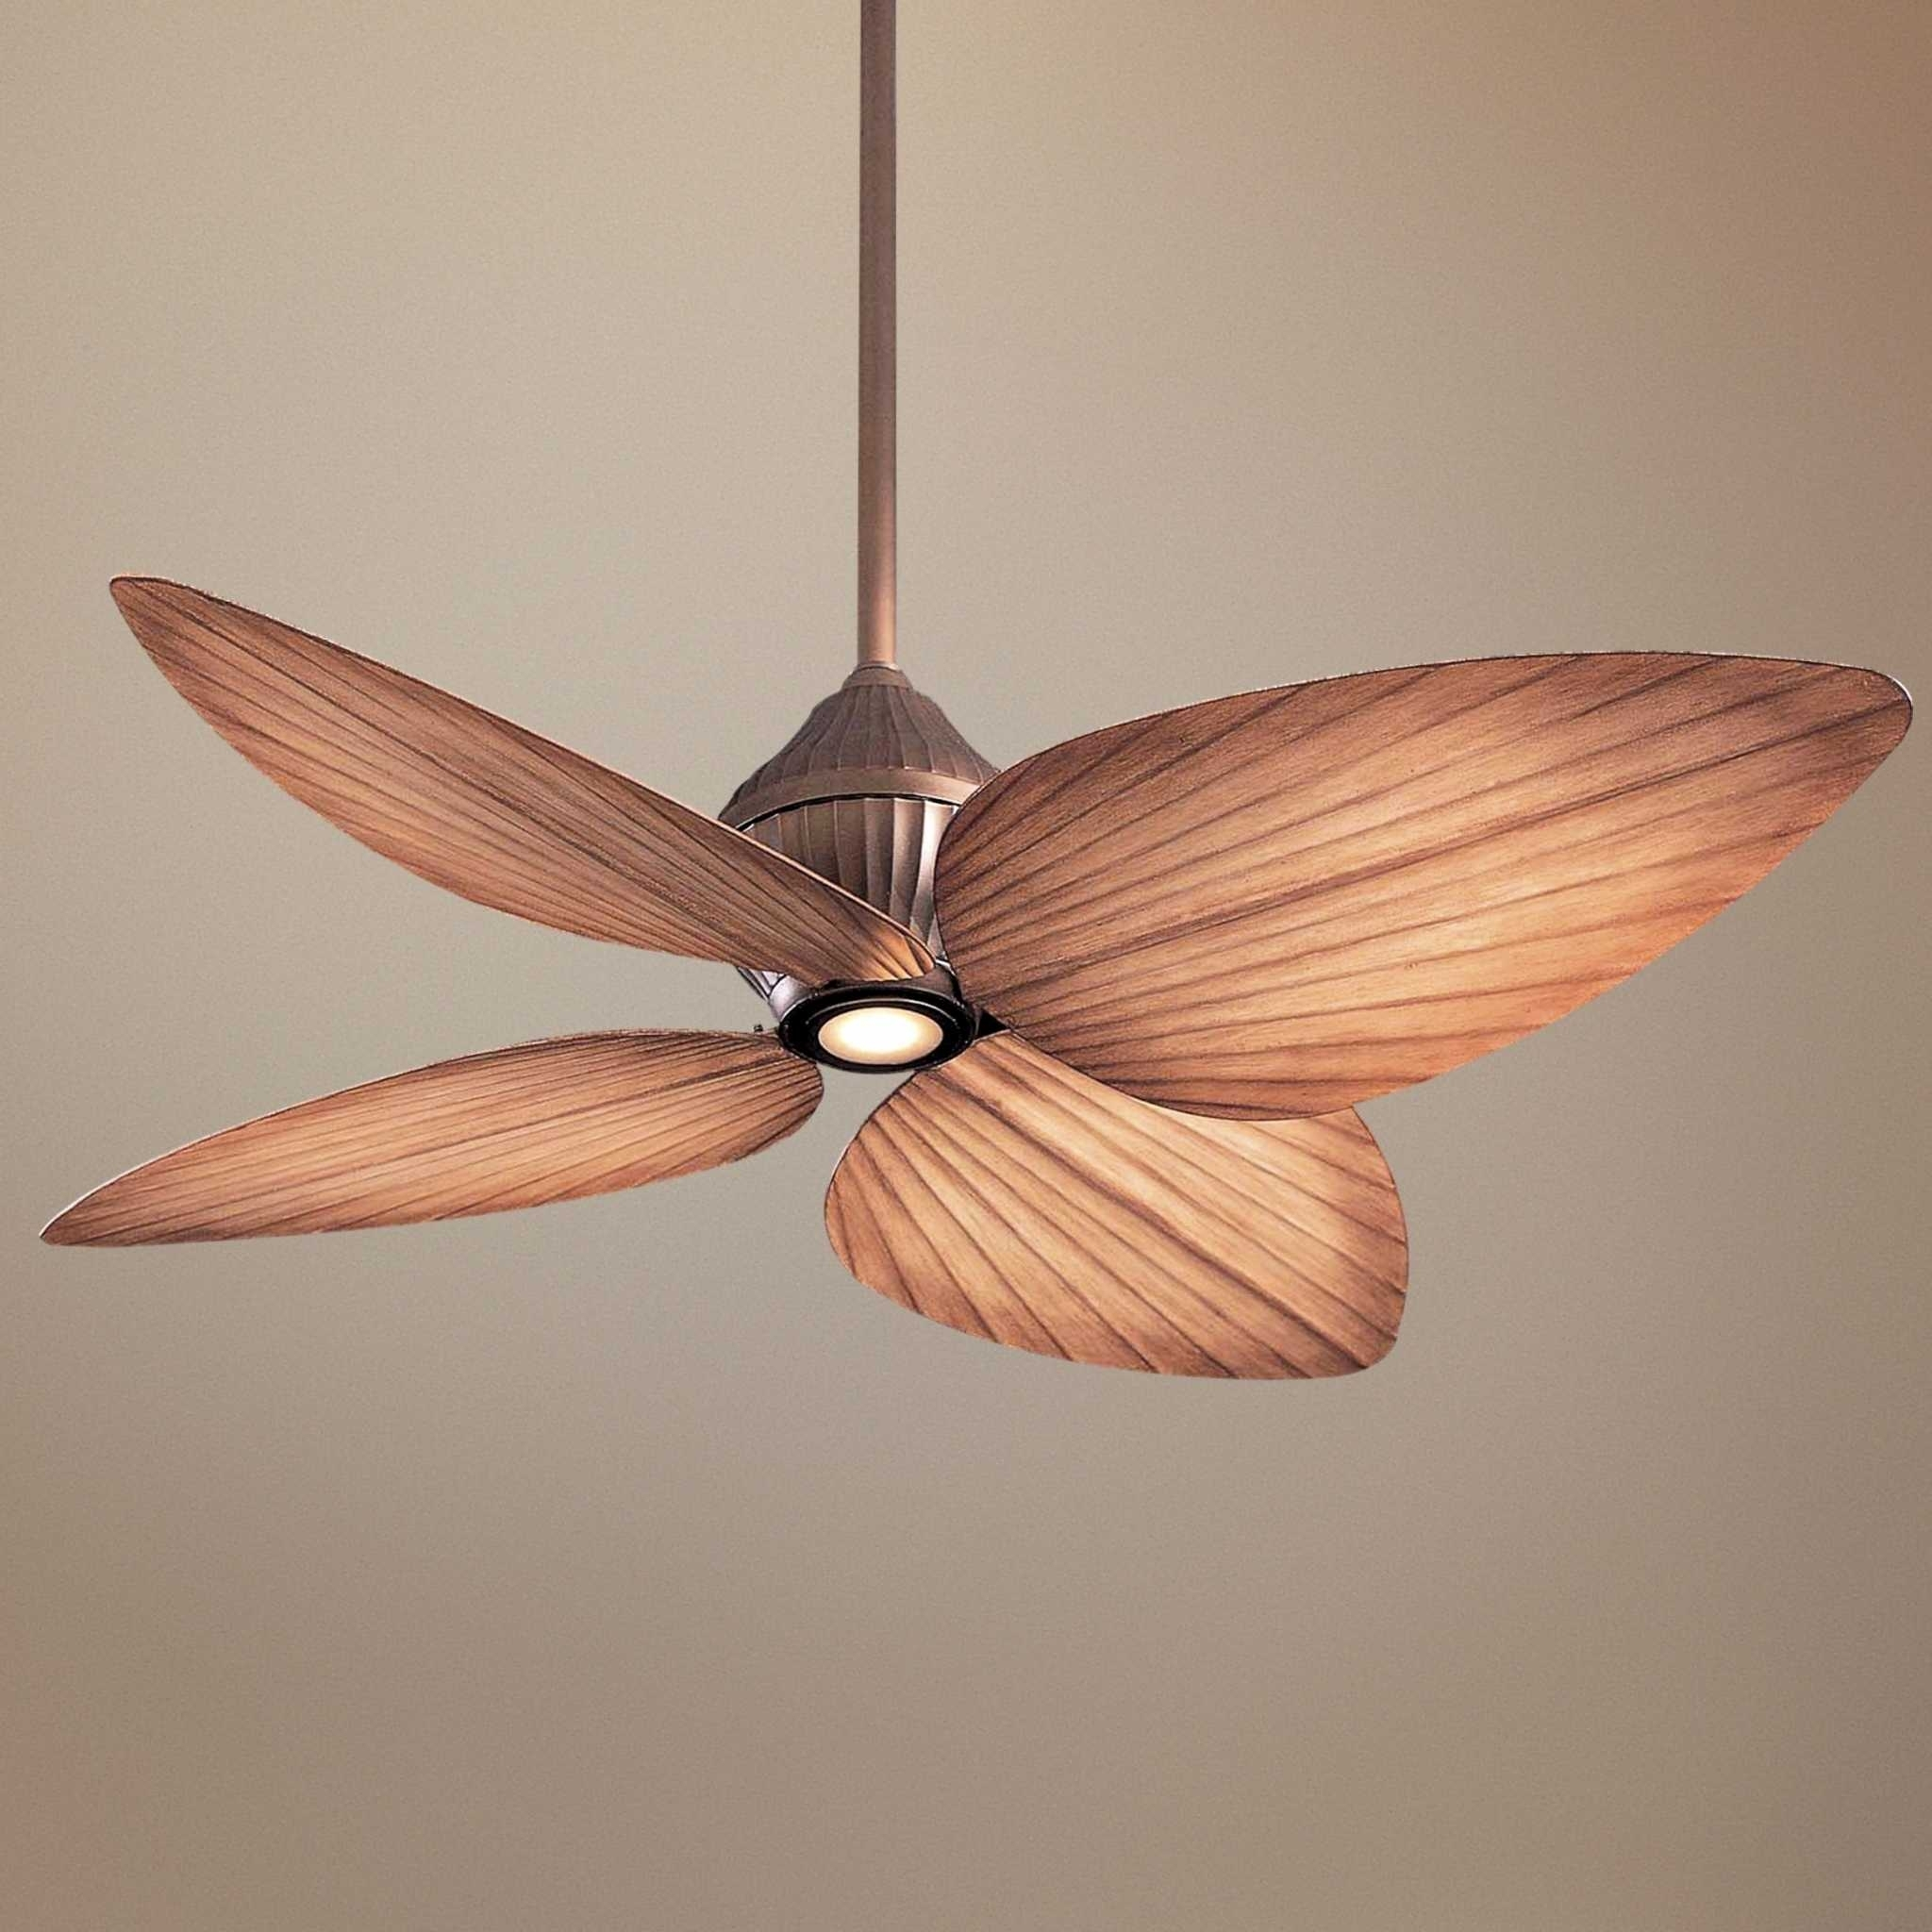 Ceiling Fan ~ Ceiling Fan Tropical Outdoor Fans With Lights Aspen Pertaining To Outdoor Ceiling Fans With Tropical Lights (View 10 of 15)